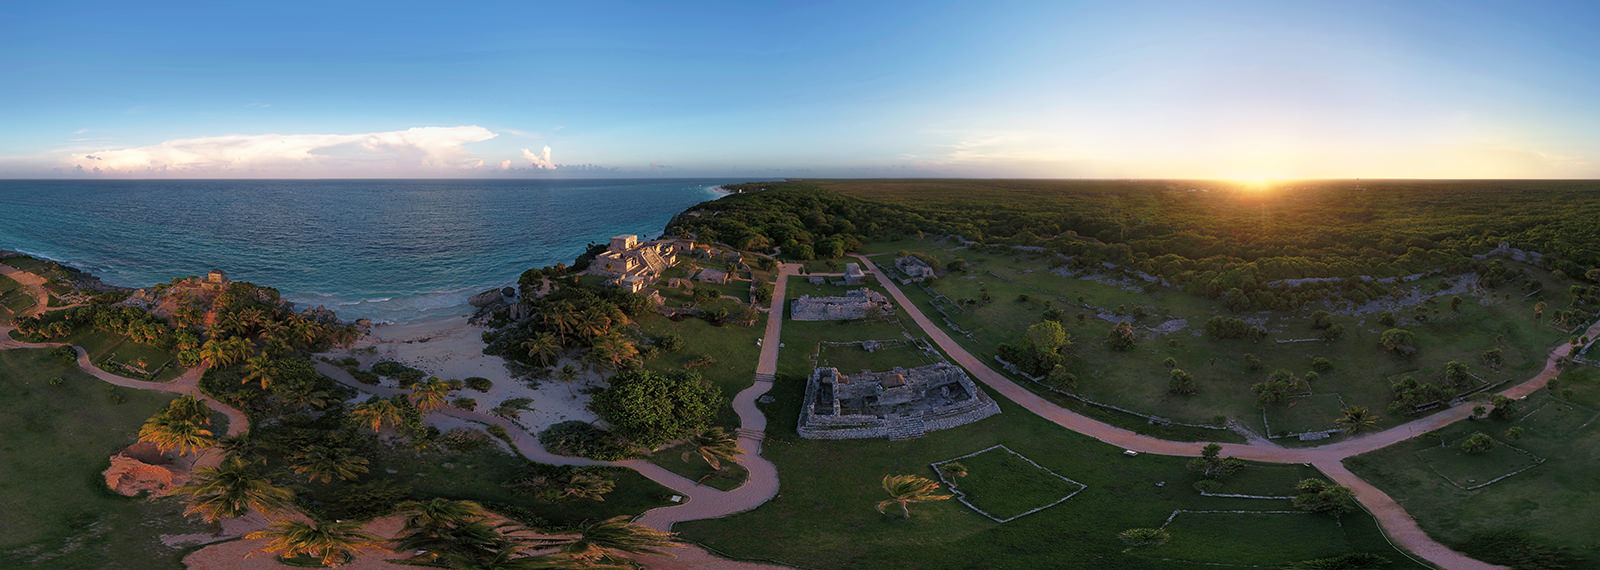 Tulum ruins at Sunset, Riviera Maya - Virtual tour